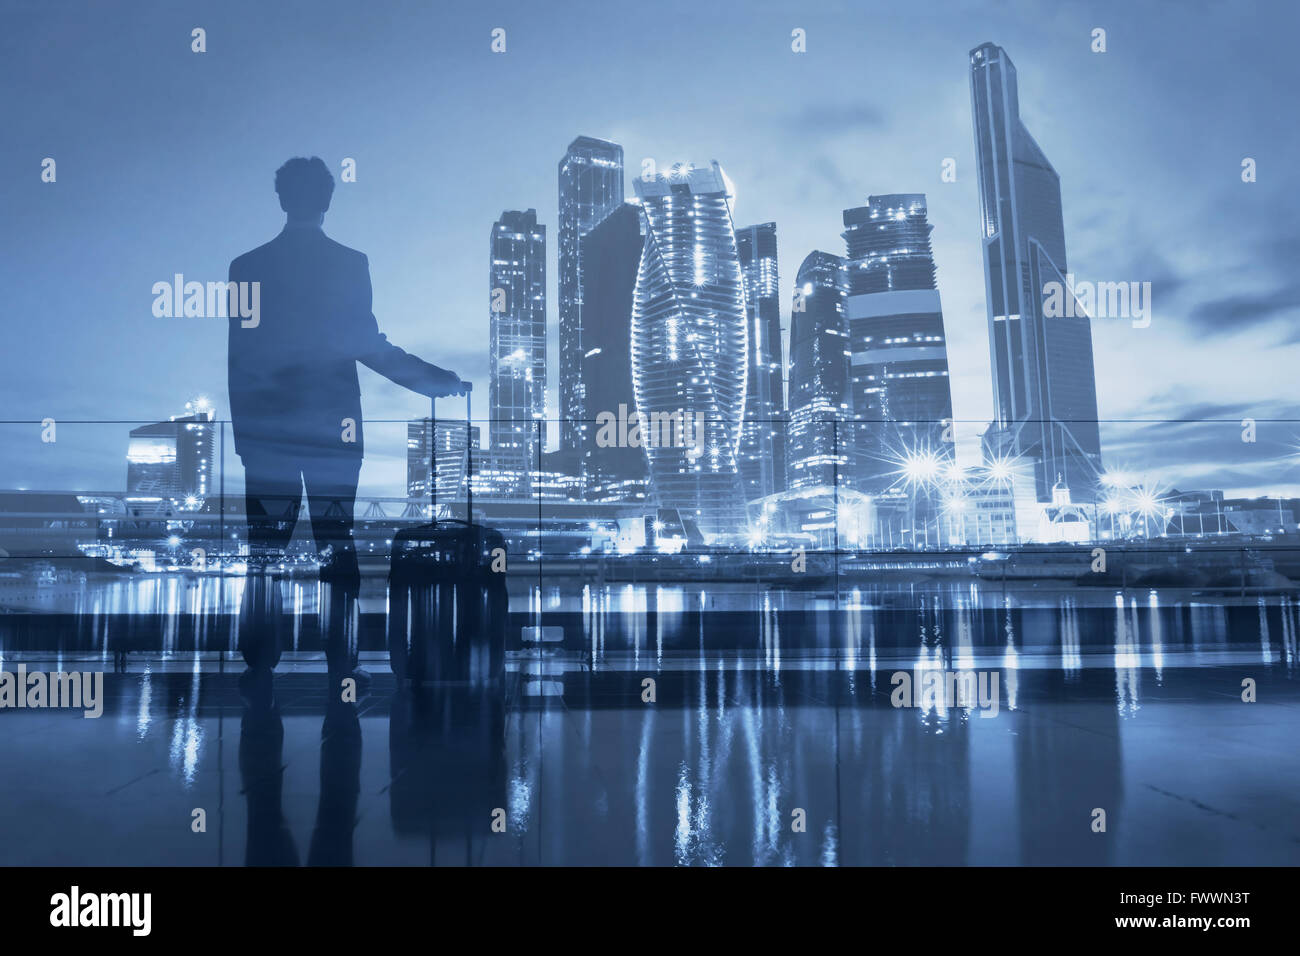 business travel, double exposure of passenger waiting in airport and modern city skyline - Stock Image